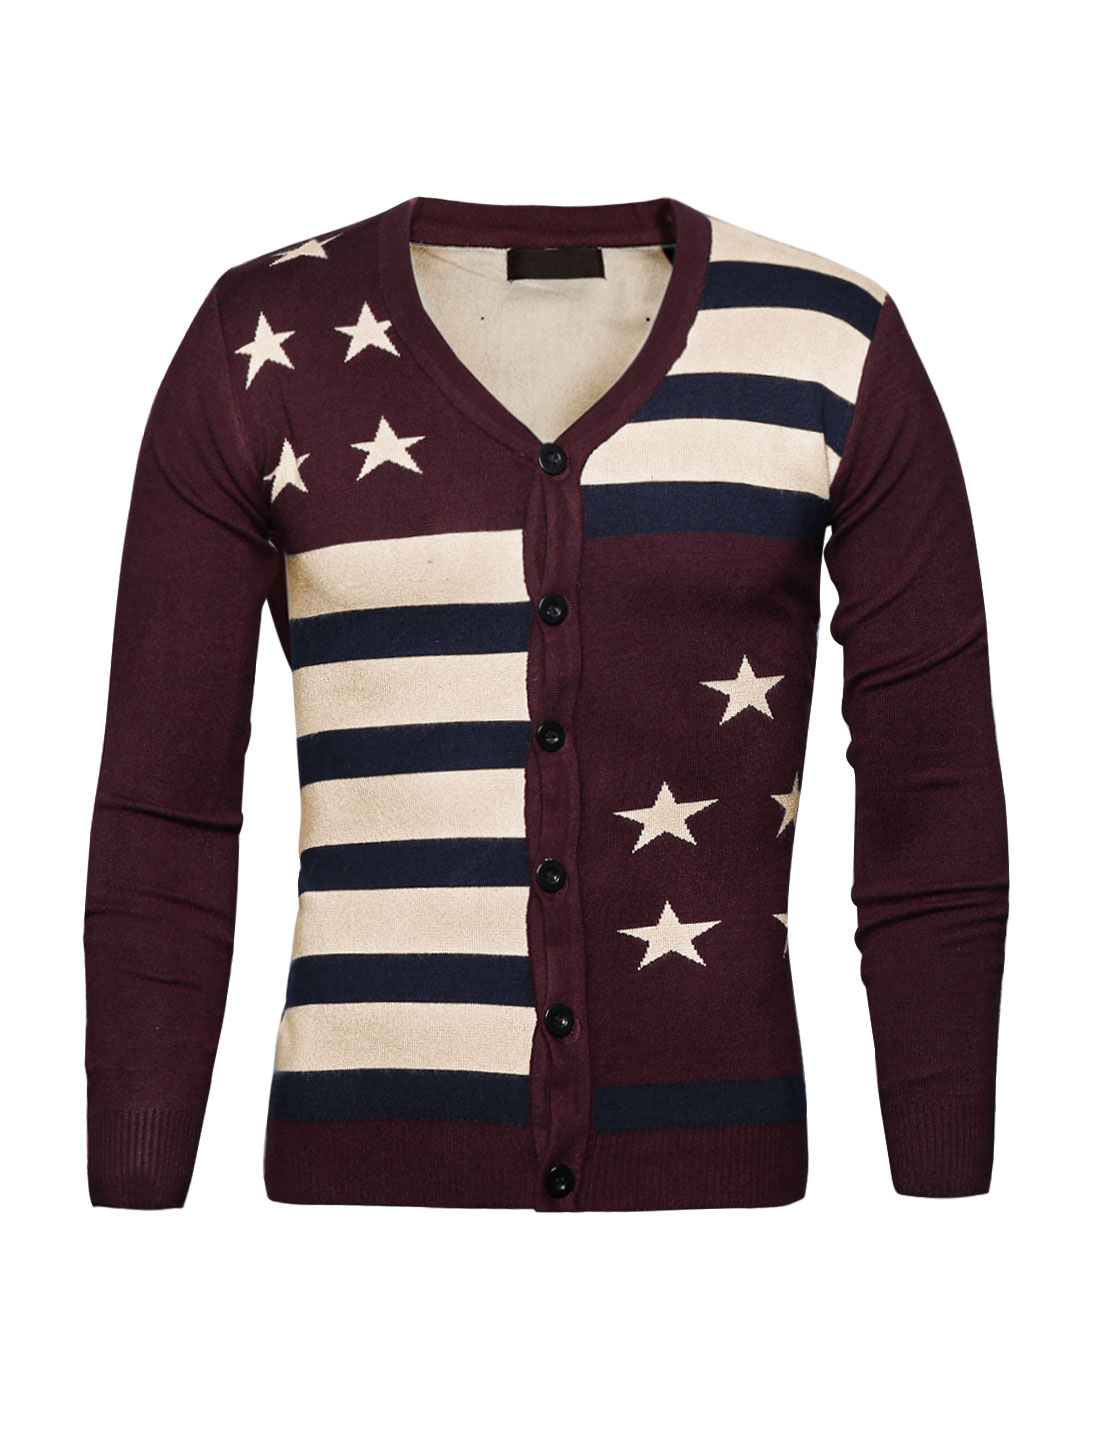 Man Contrast Color Striped Stars Knit Cardigan Red S